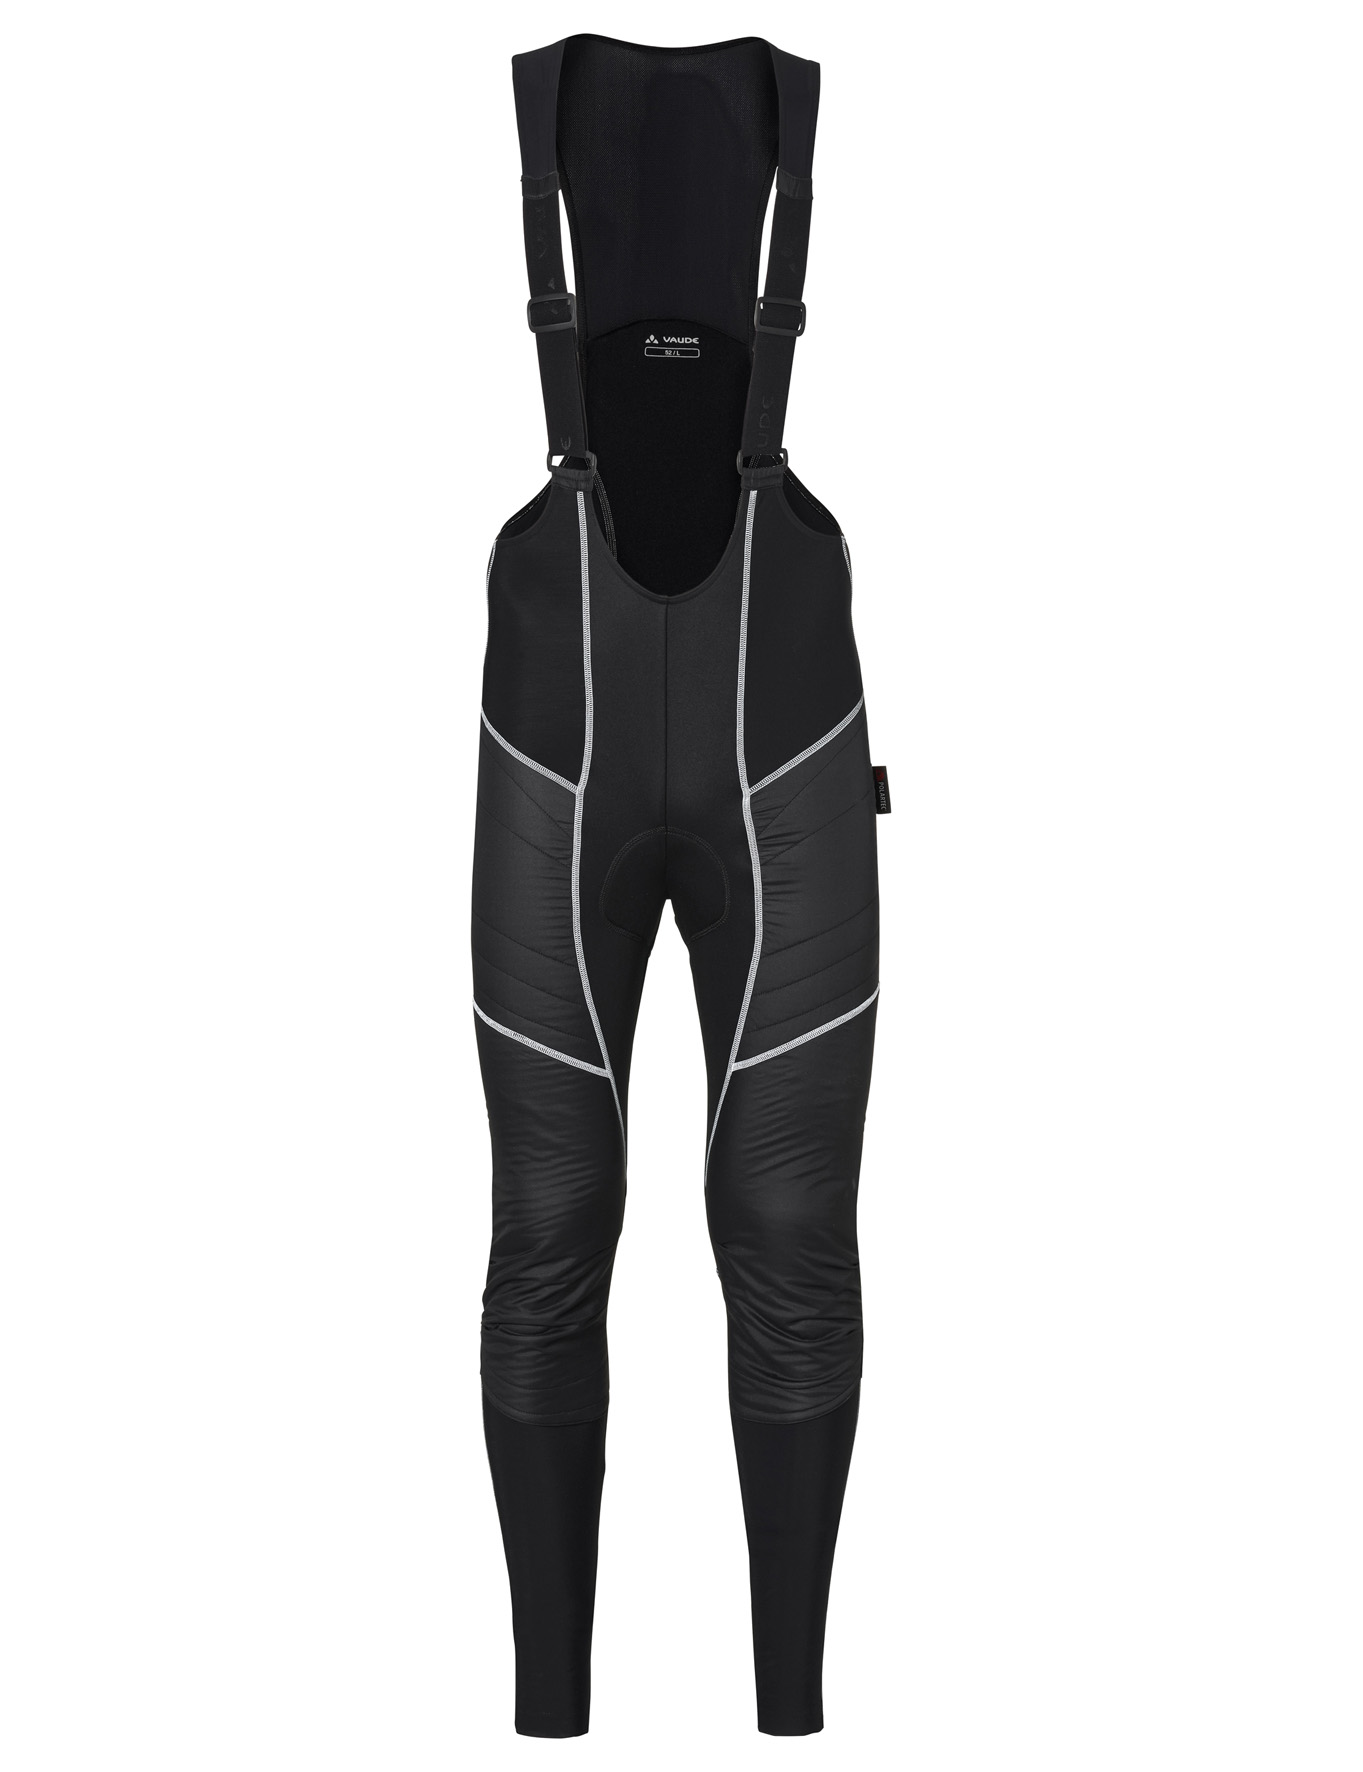 VAUDE Men´s Alphapro Bib Pants black Größe L - schneider-sports